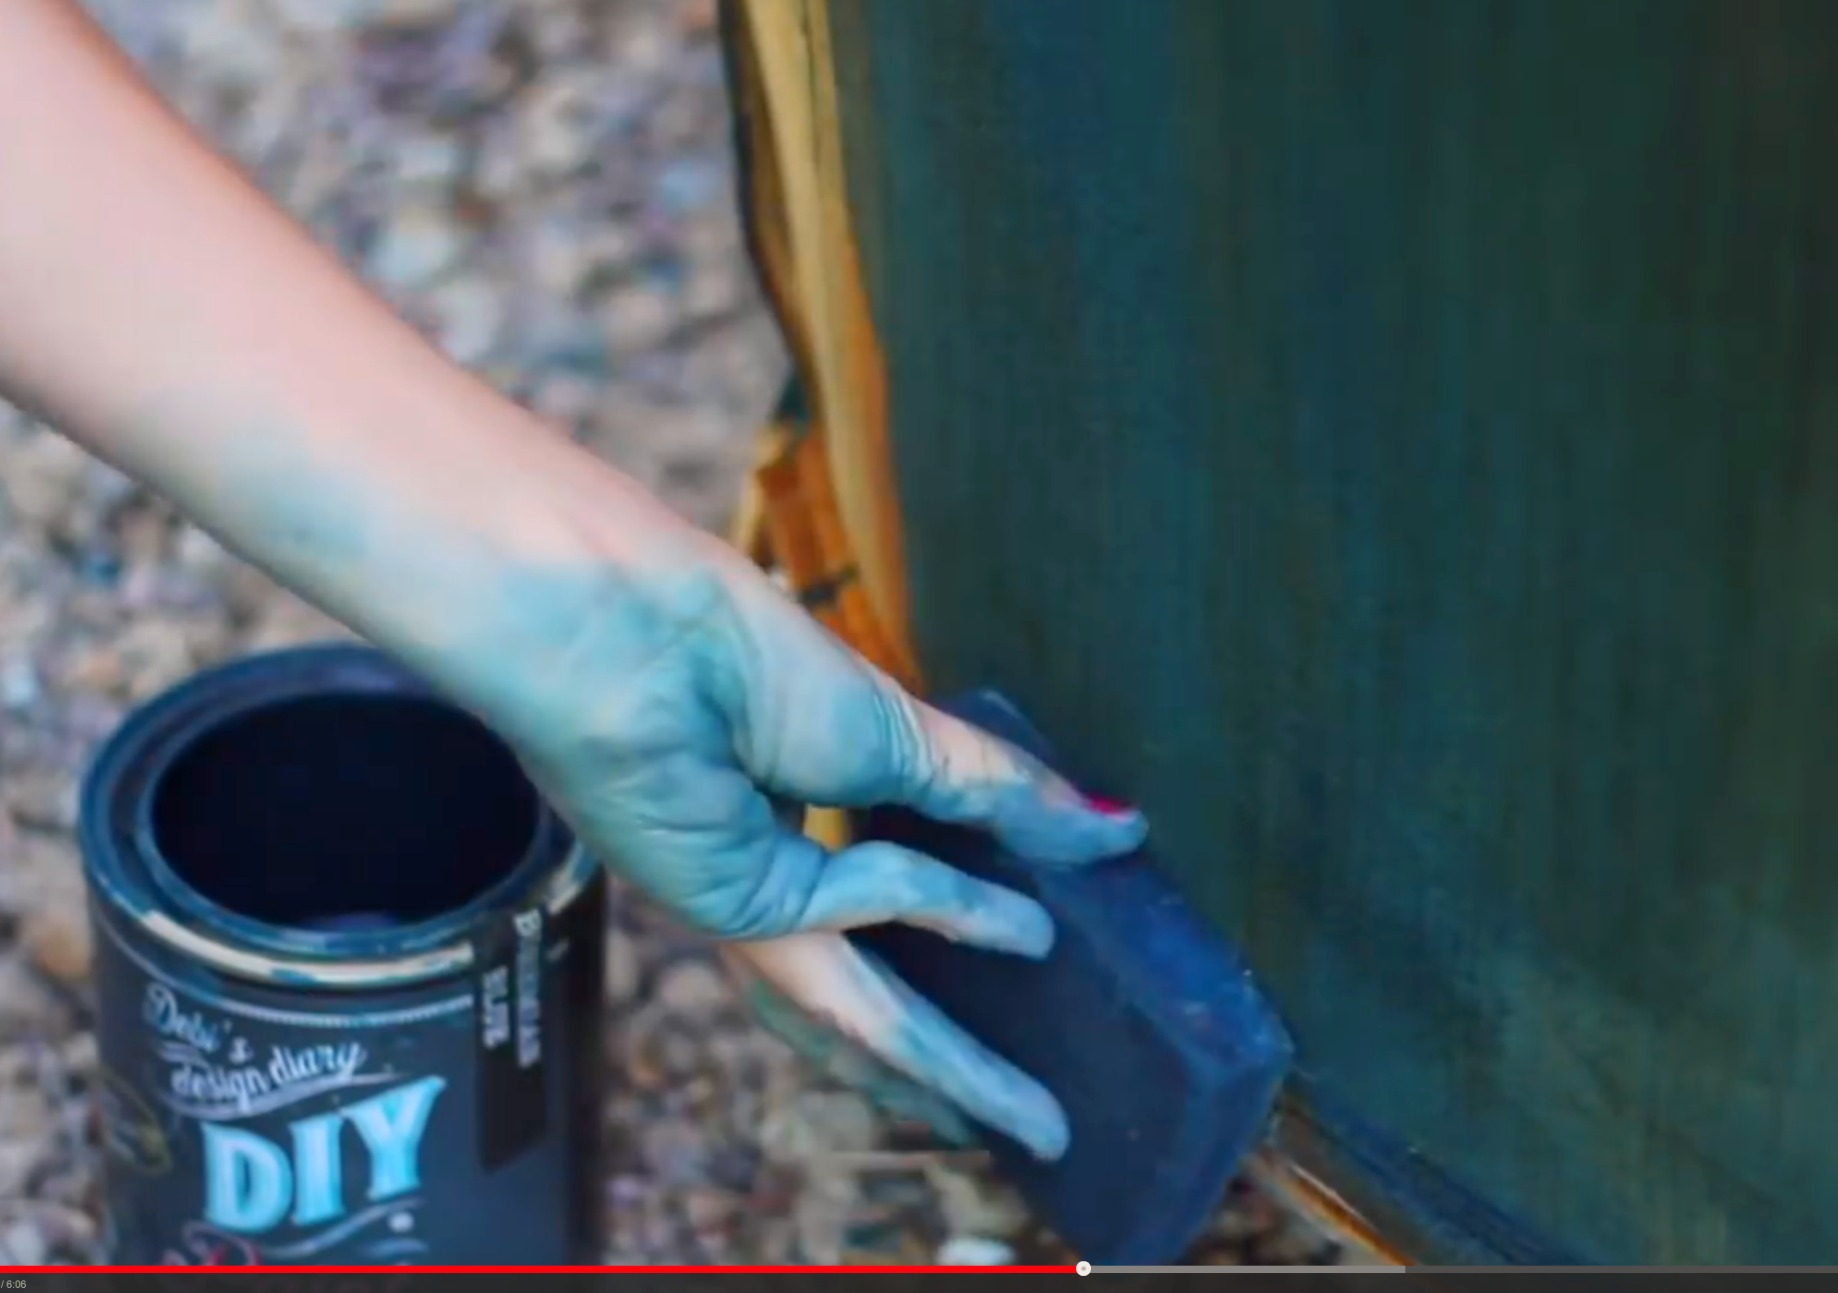 How to paint a couch or upholstery | Debis Design Diary